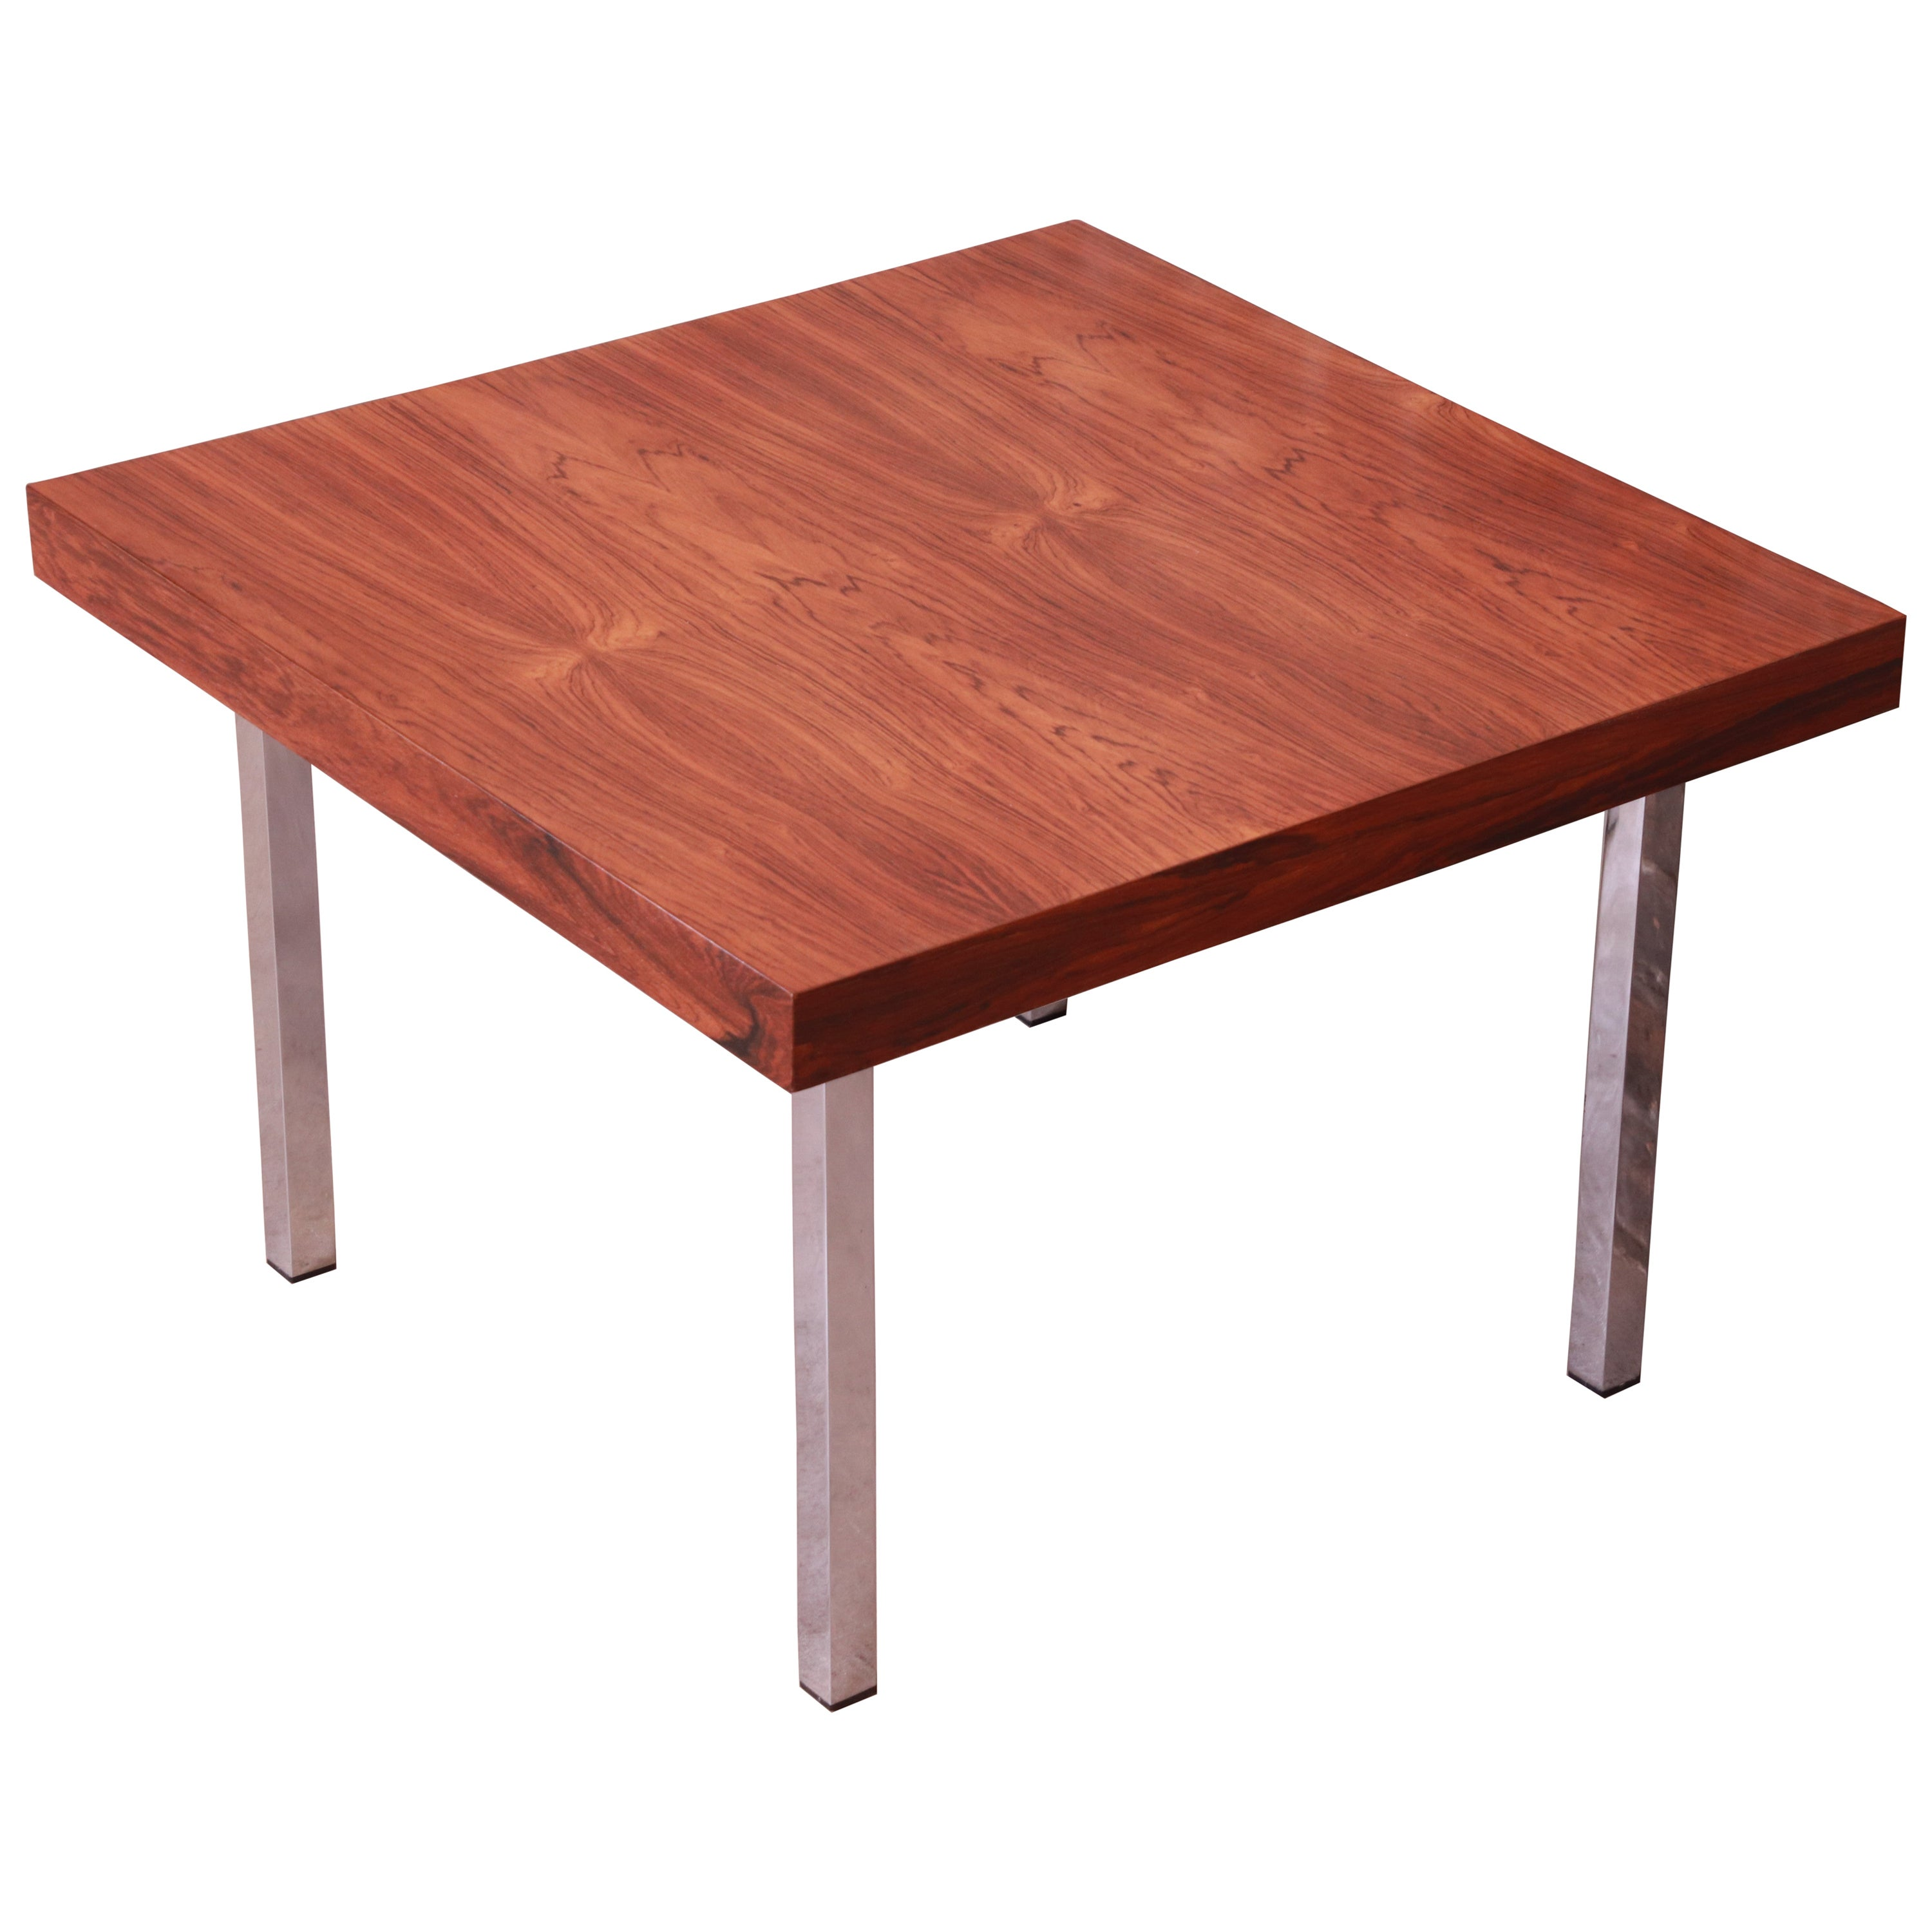 Milo Baughman for Thayer Coggin Rosewood and Chrome Side Table, Newly Restored